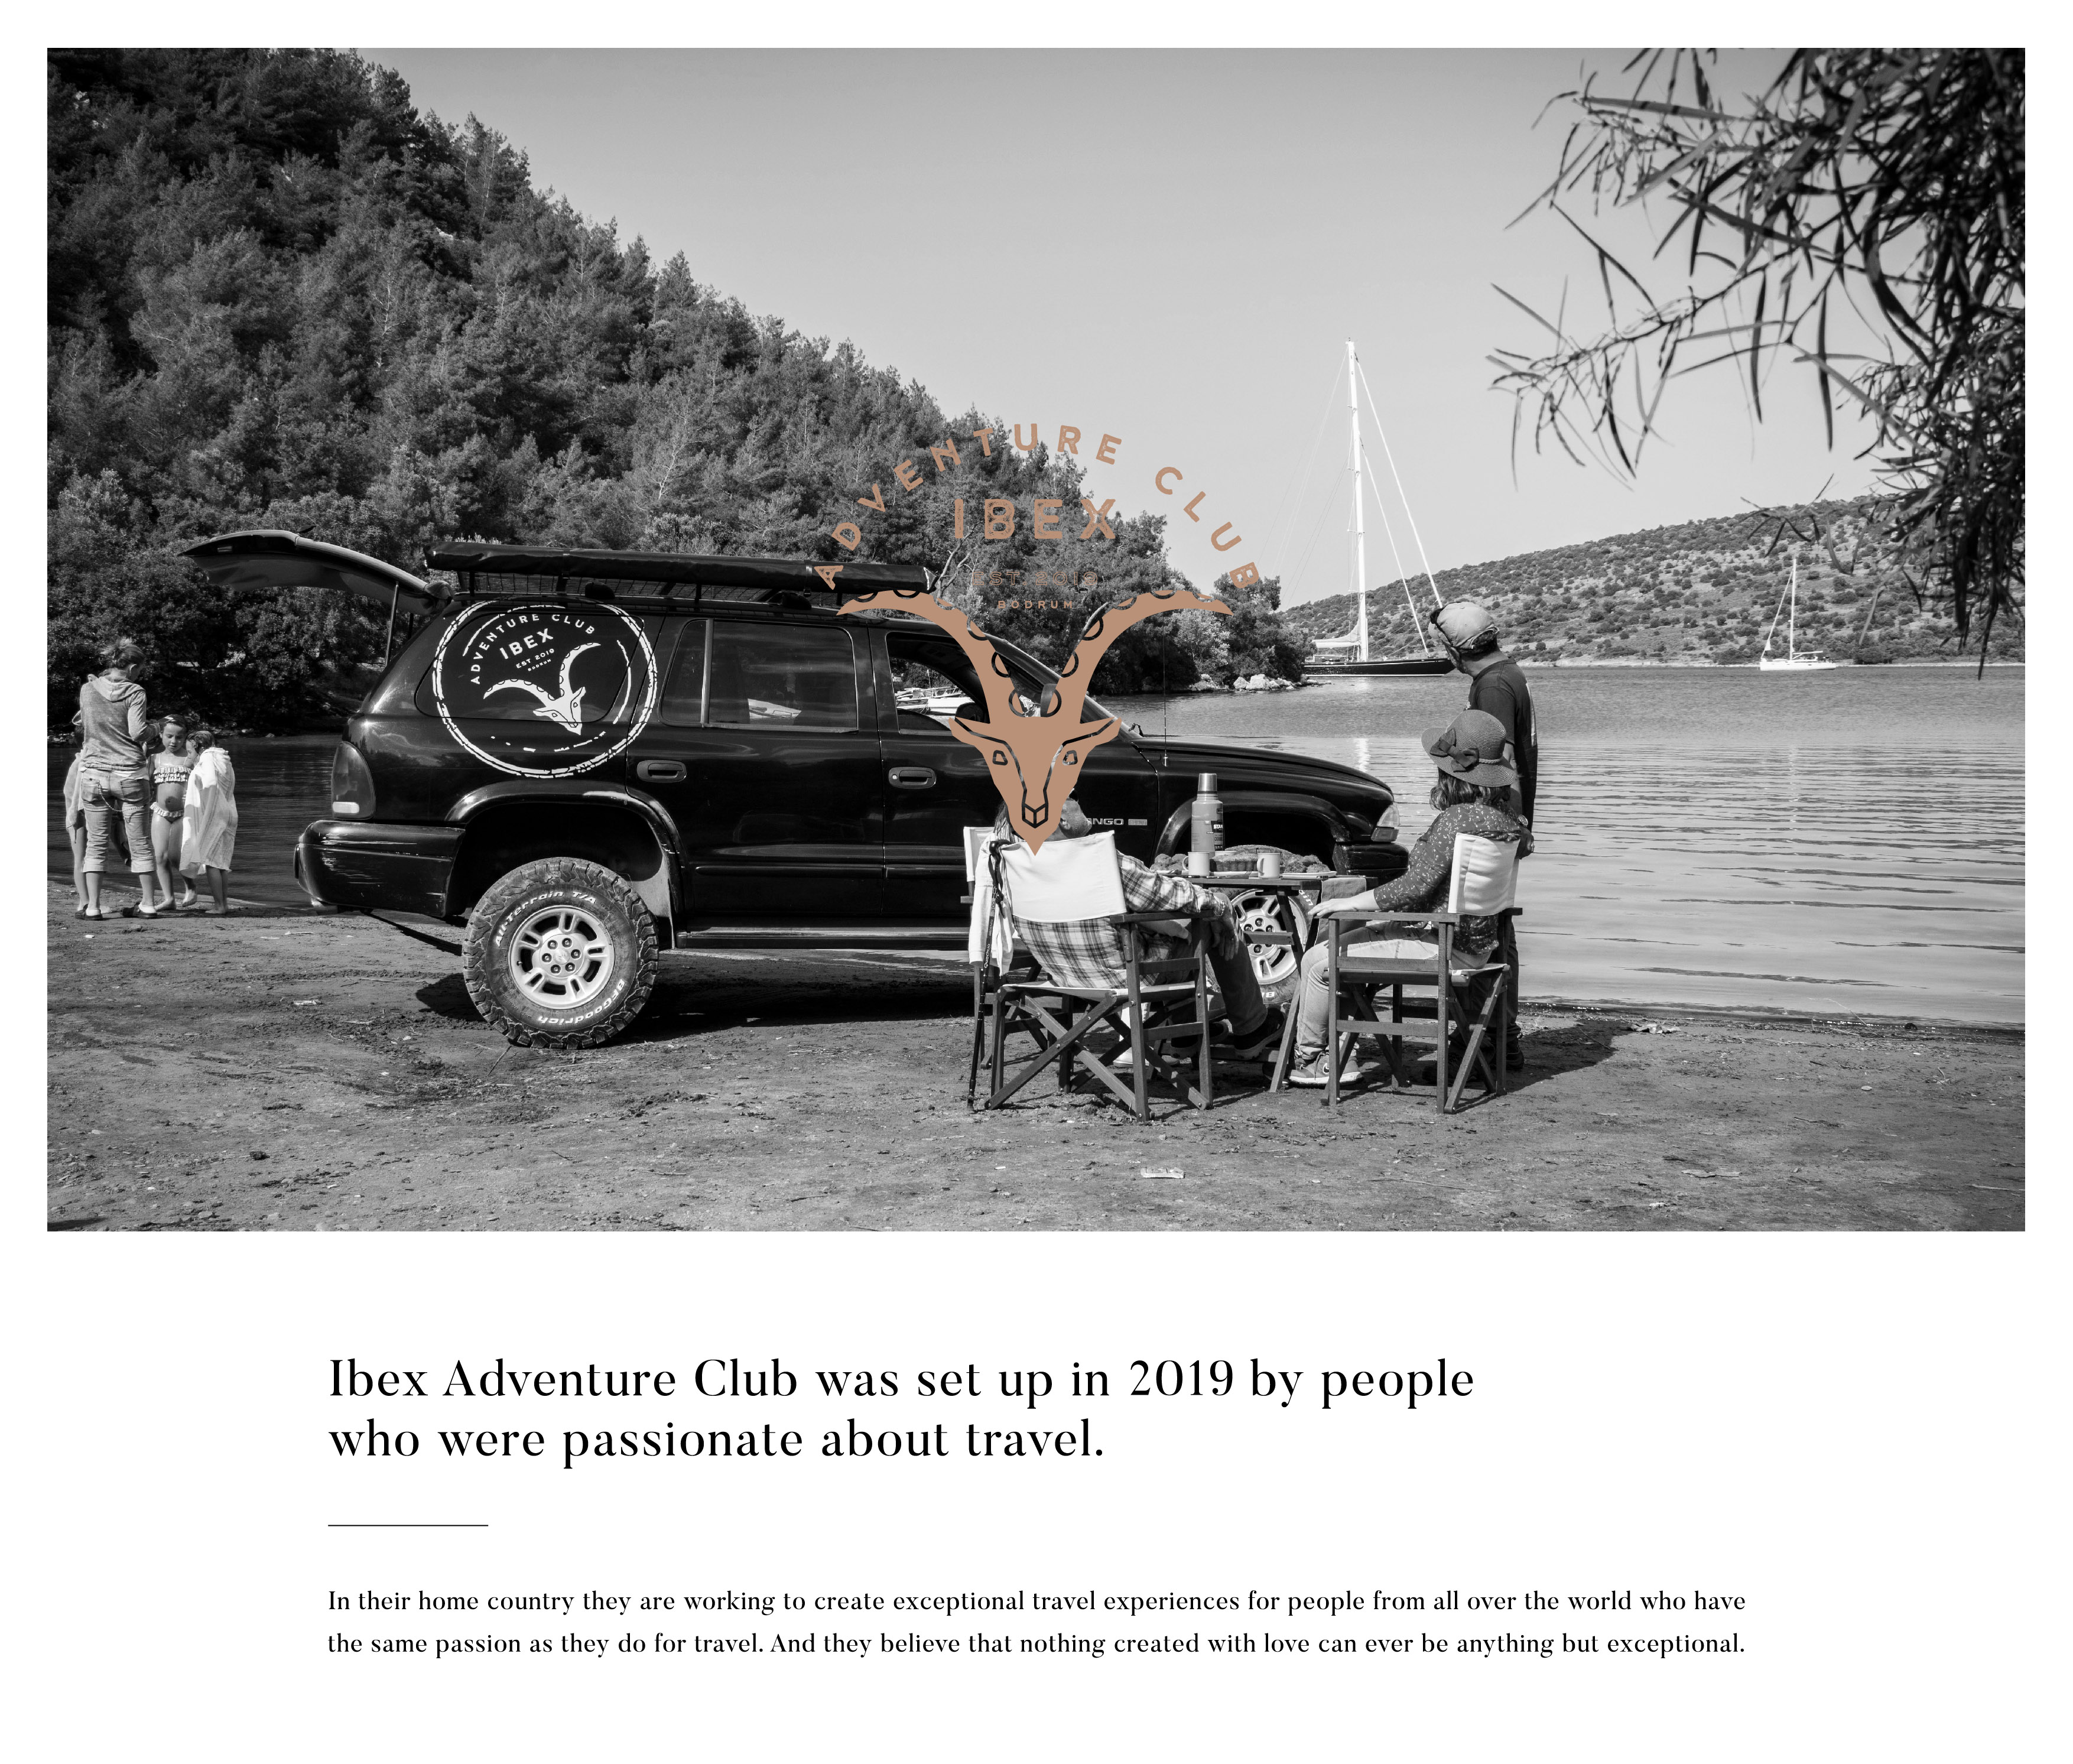 Ibex Adventure Club Brand Identity Design by Archigraphix